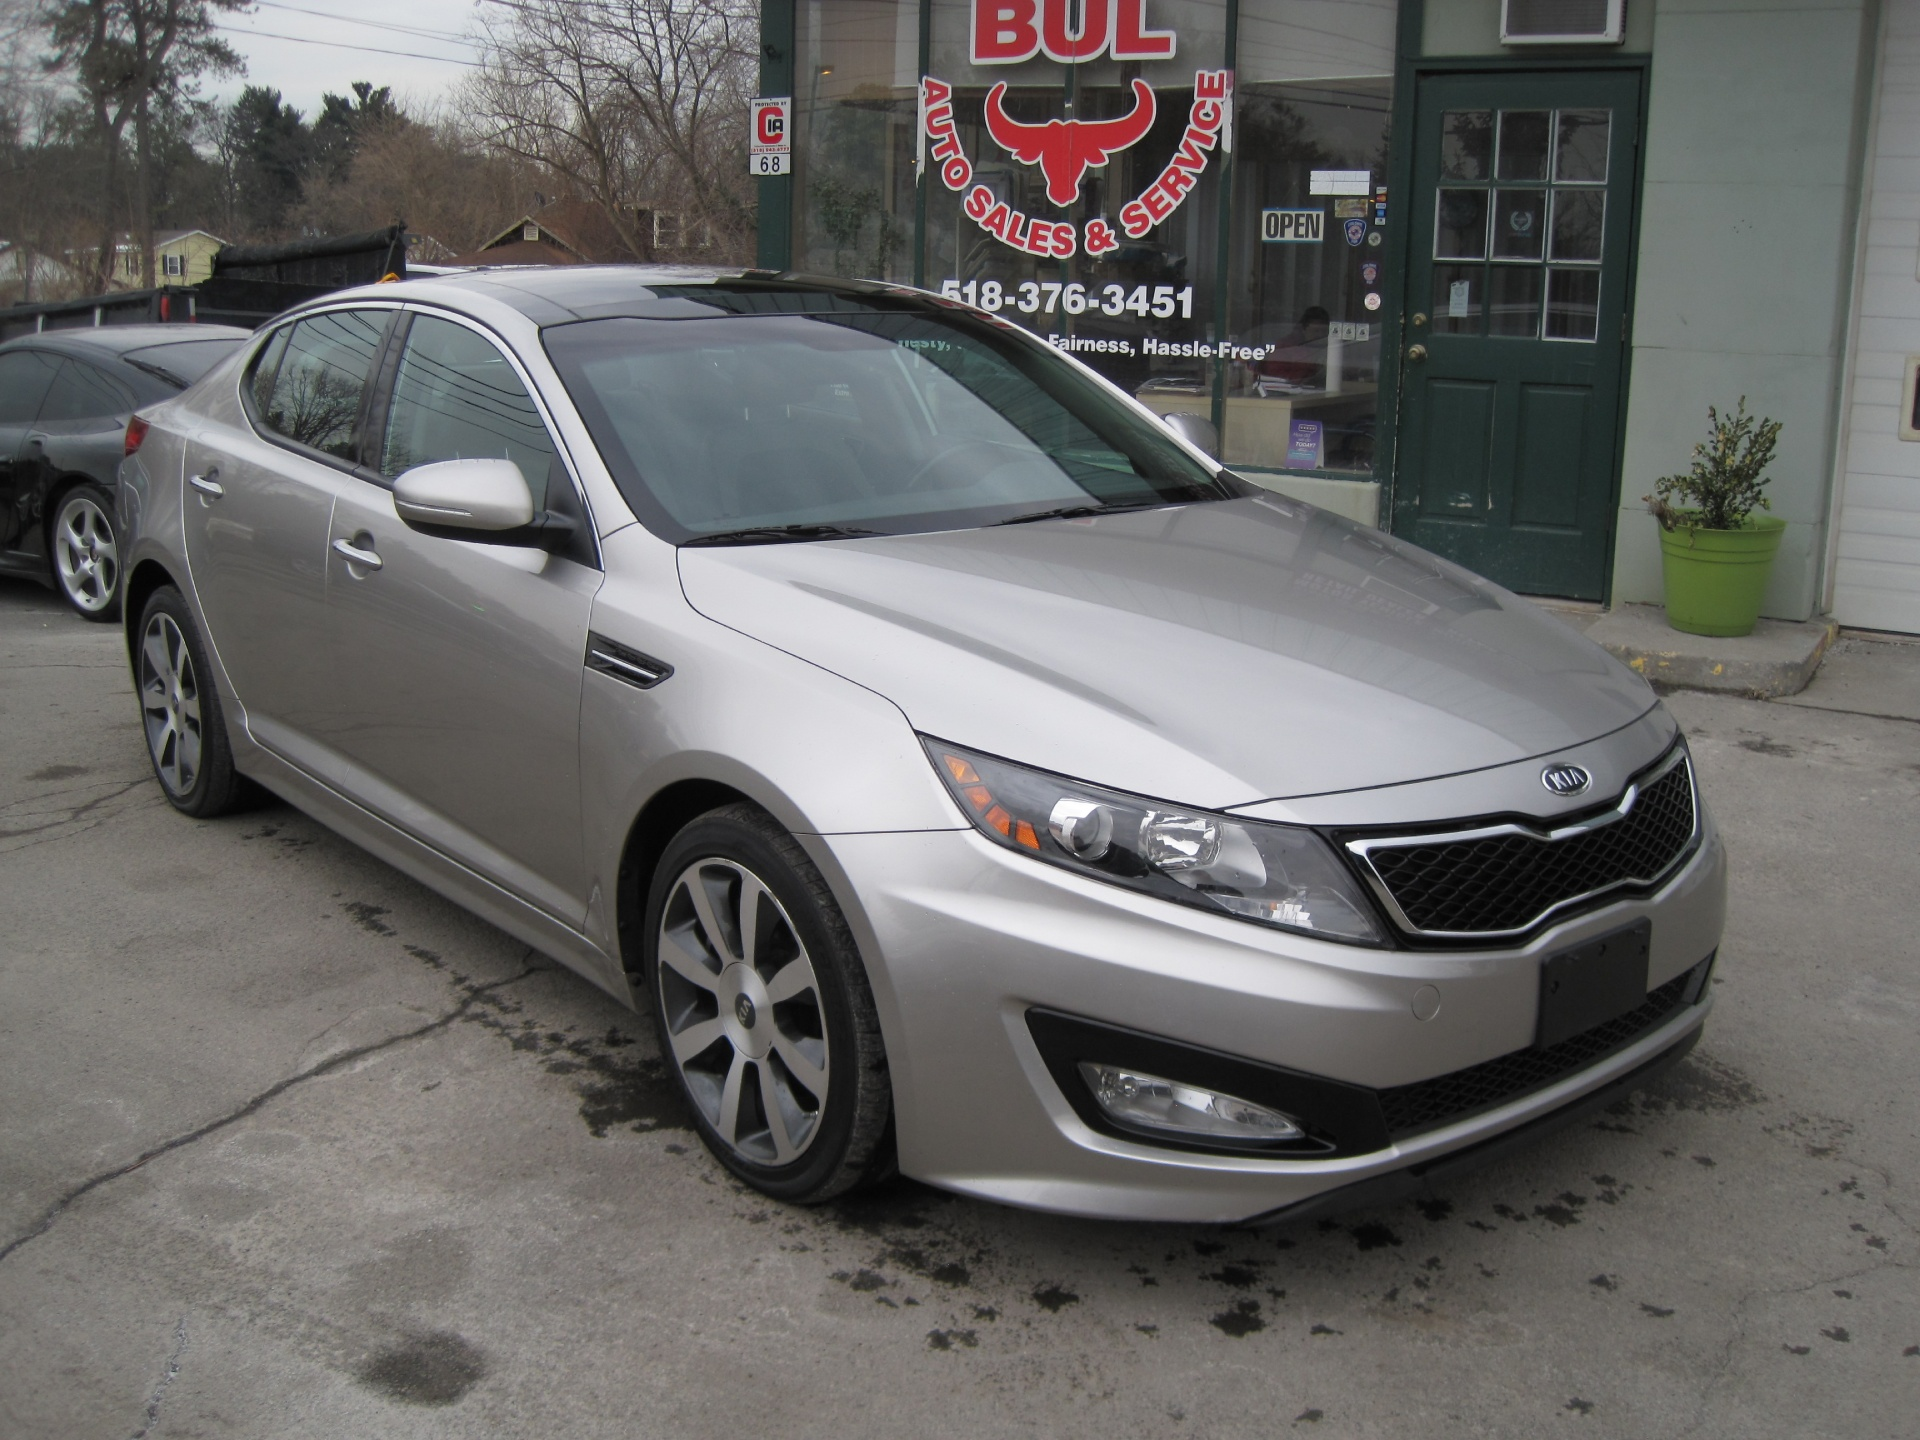 2011 kia optima sx turbo 1 owner panoramic roof heatd and. Black Bedroom Furniture Sets. Home Design Ideas